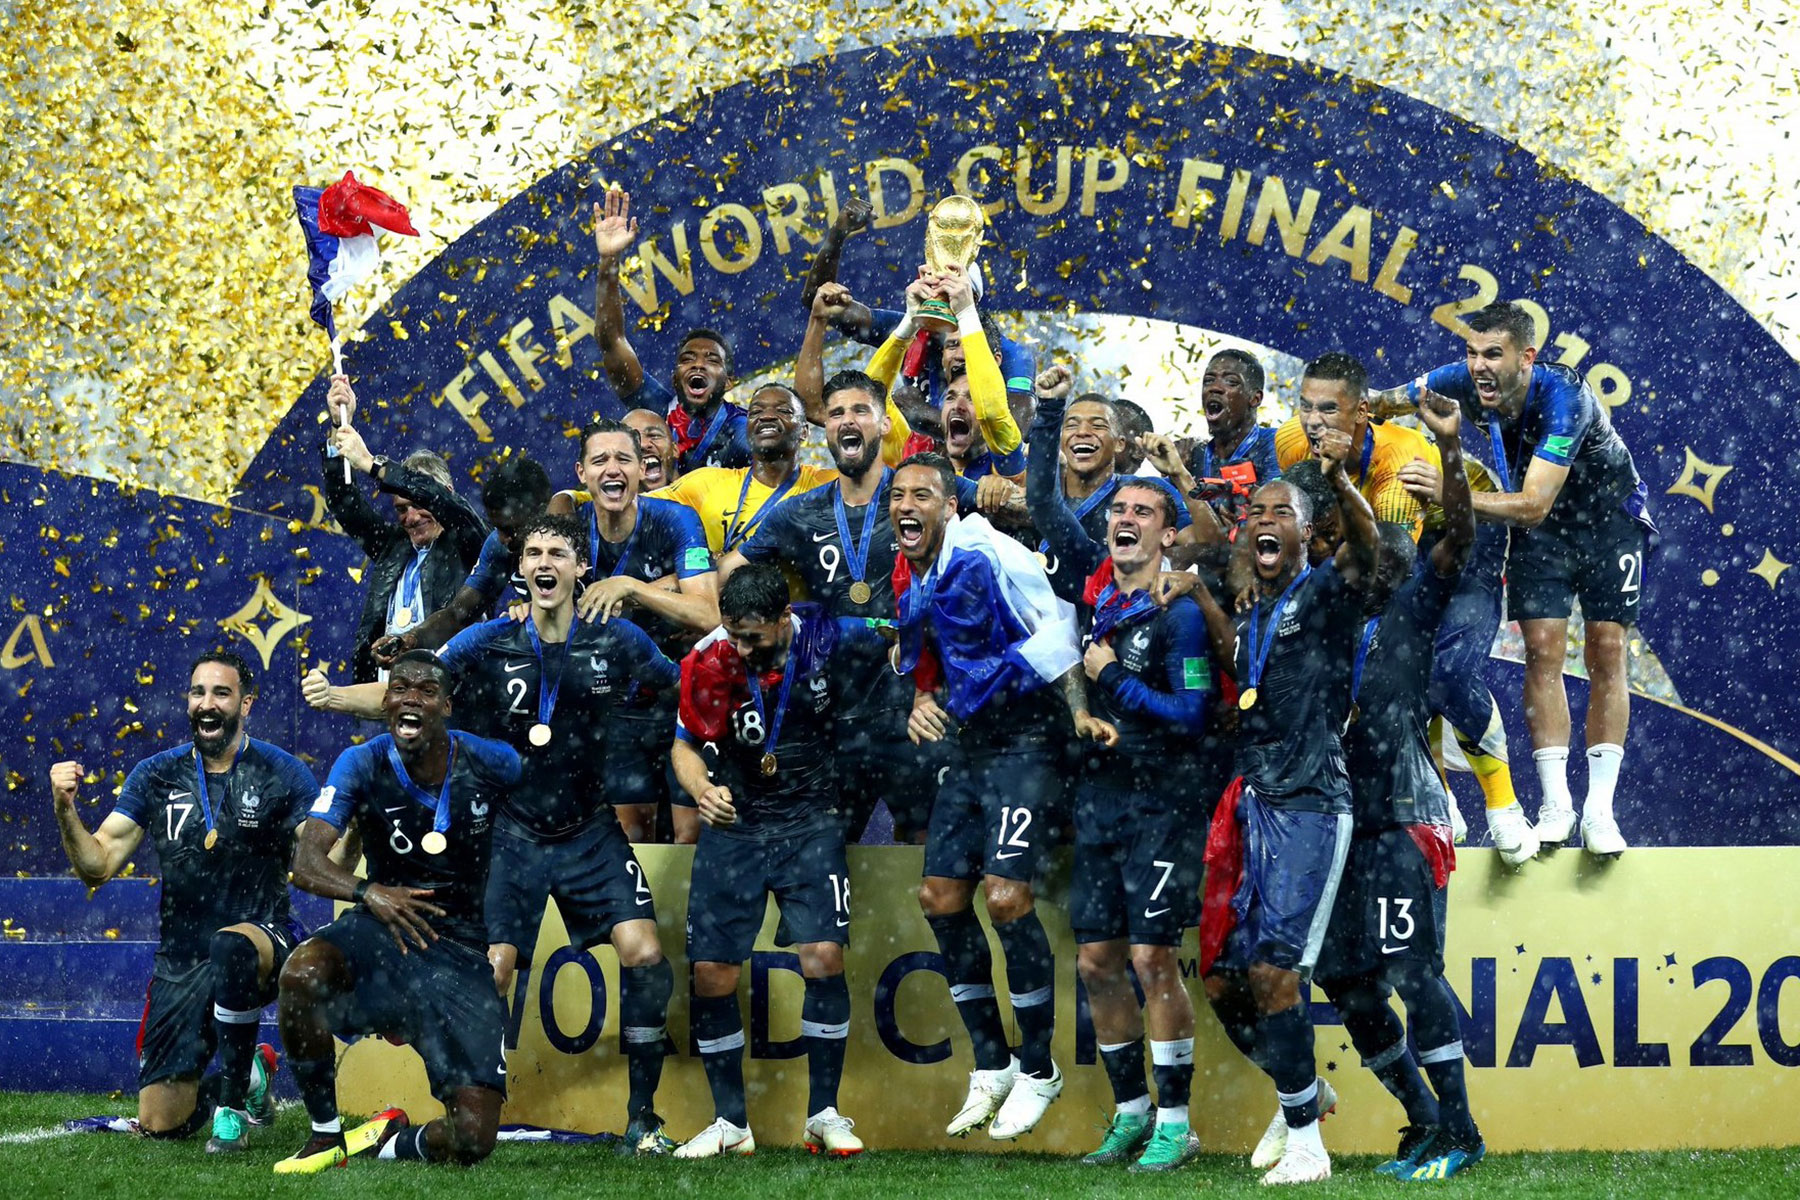 Muslim players help French national football team win FIFA 2018     The French national team was named world champion after defeating the  Croatian team 4 2 in the 2018 FIFA World Cup Final in Moscow on Sunday   France won its